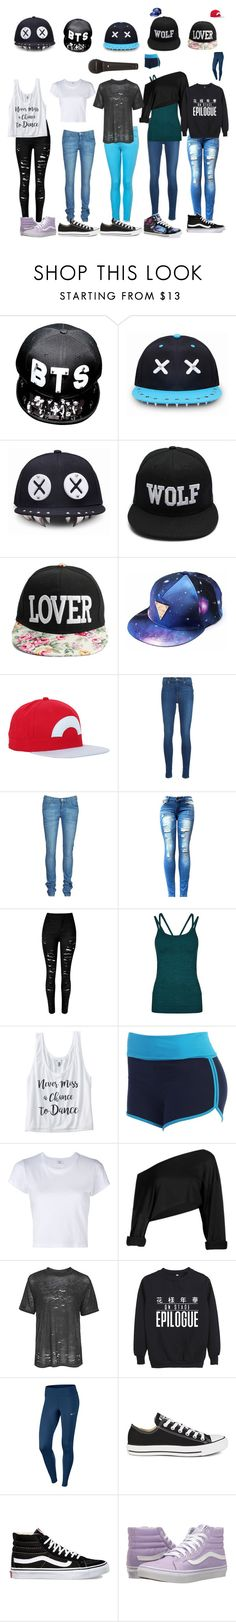 """On Stage Girl Group"" by travelplaces ❤ liked on Polyvore featuring Nintendo, Levi's, Wrangler, Sweaty Betty, RE/DONE, Topshop, NIKE, Converse, Vans and Gotta Flurt"